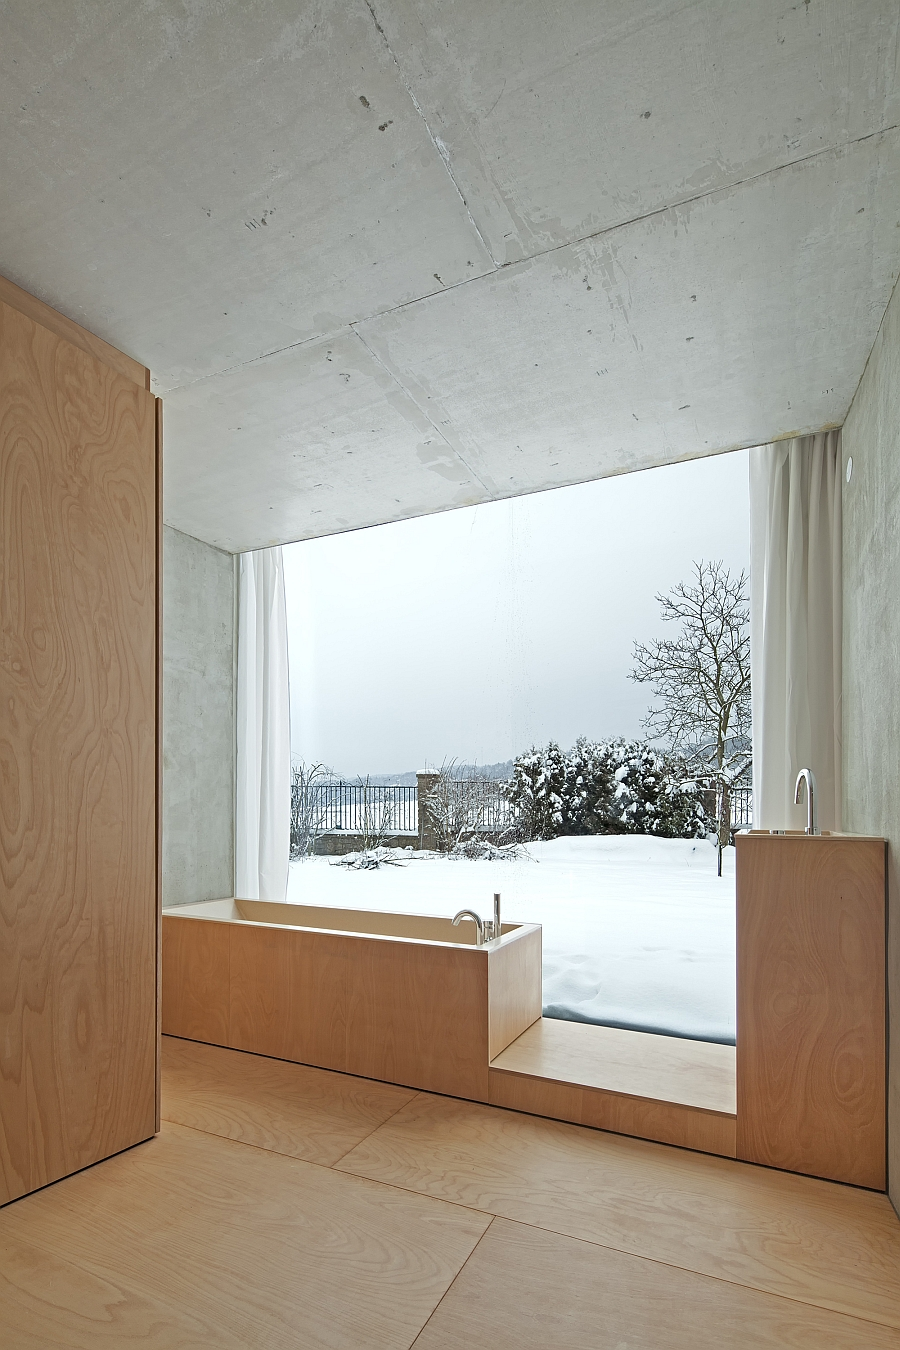 Stylish bath with a view of the scenic landscape outside